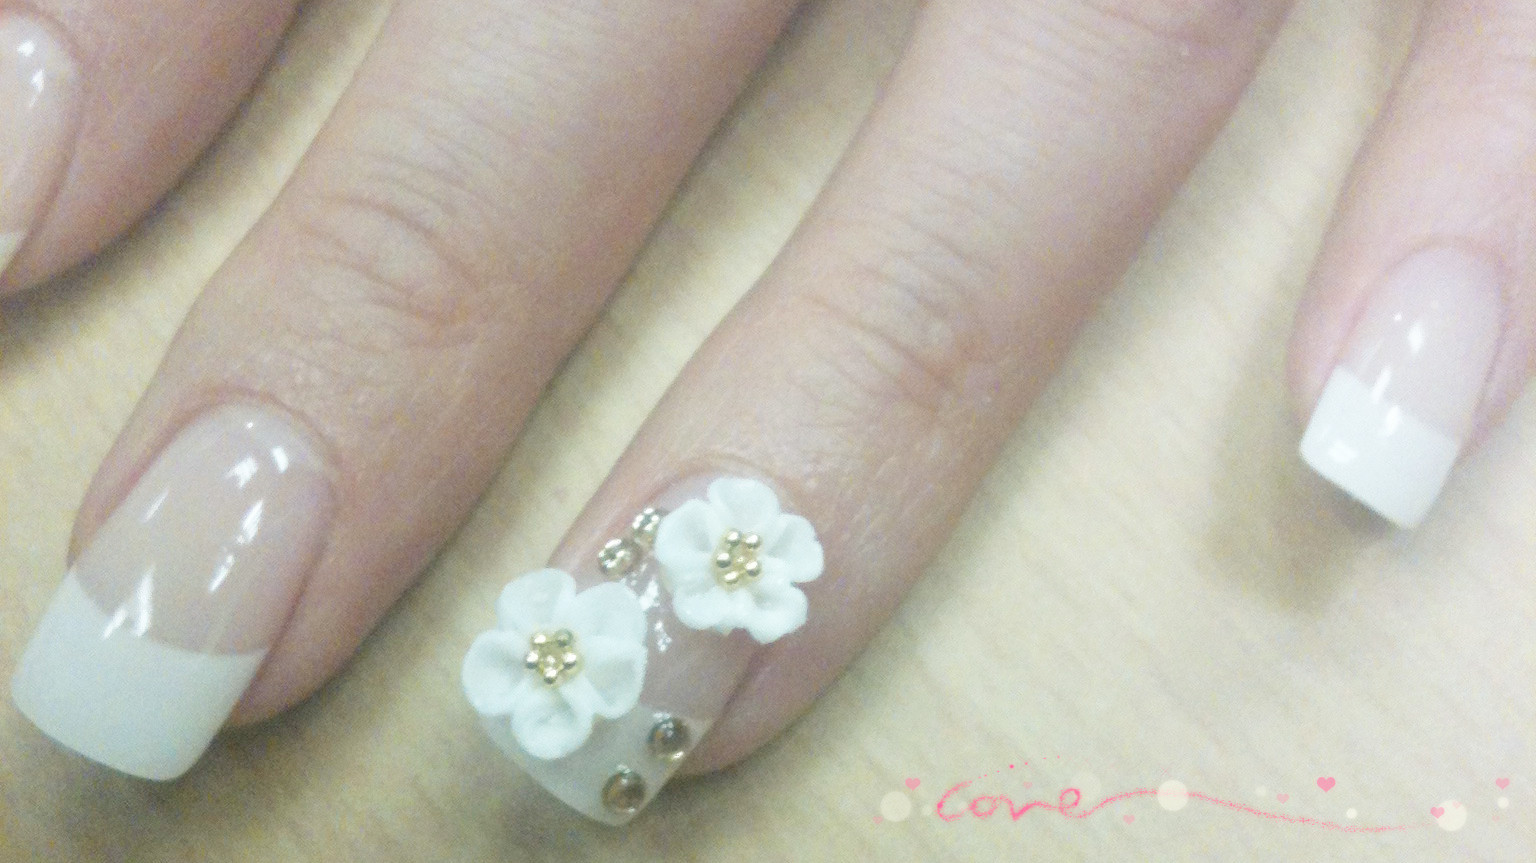 xhh713 Nails time! ^^: French white tips with 3D flower design